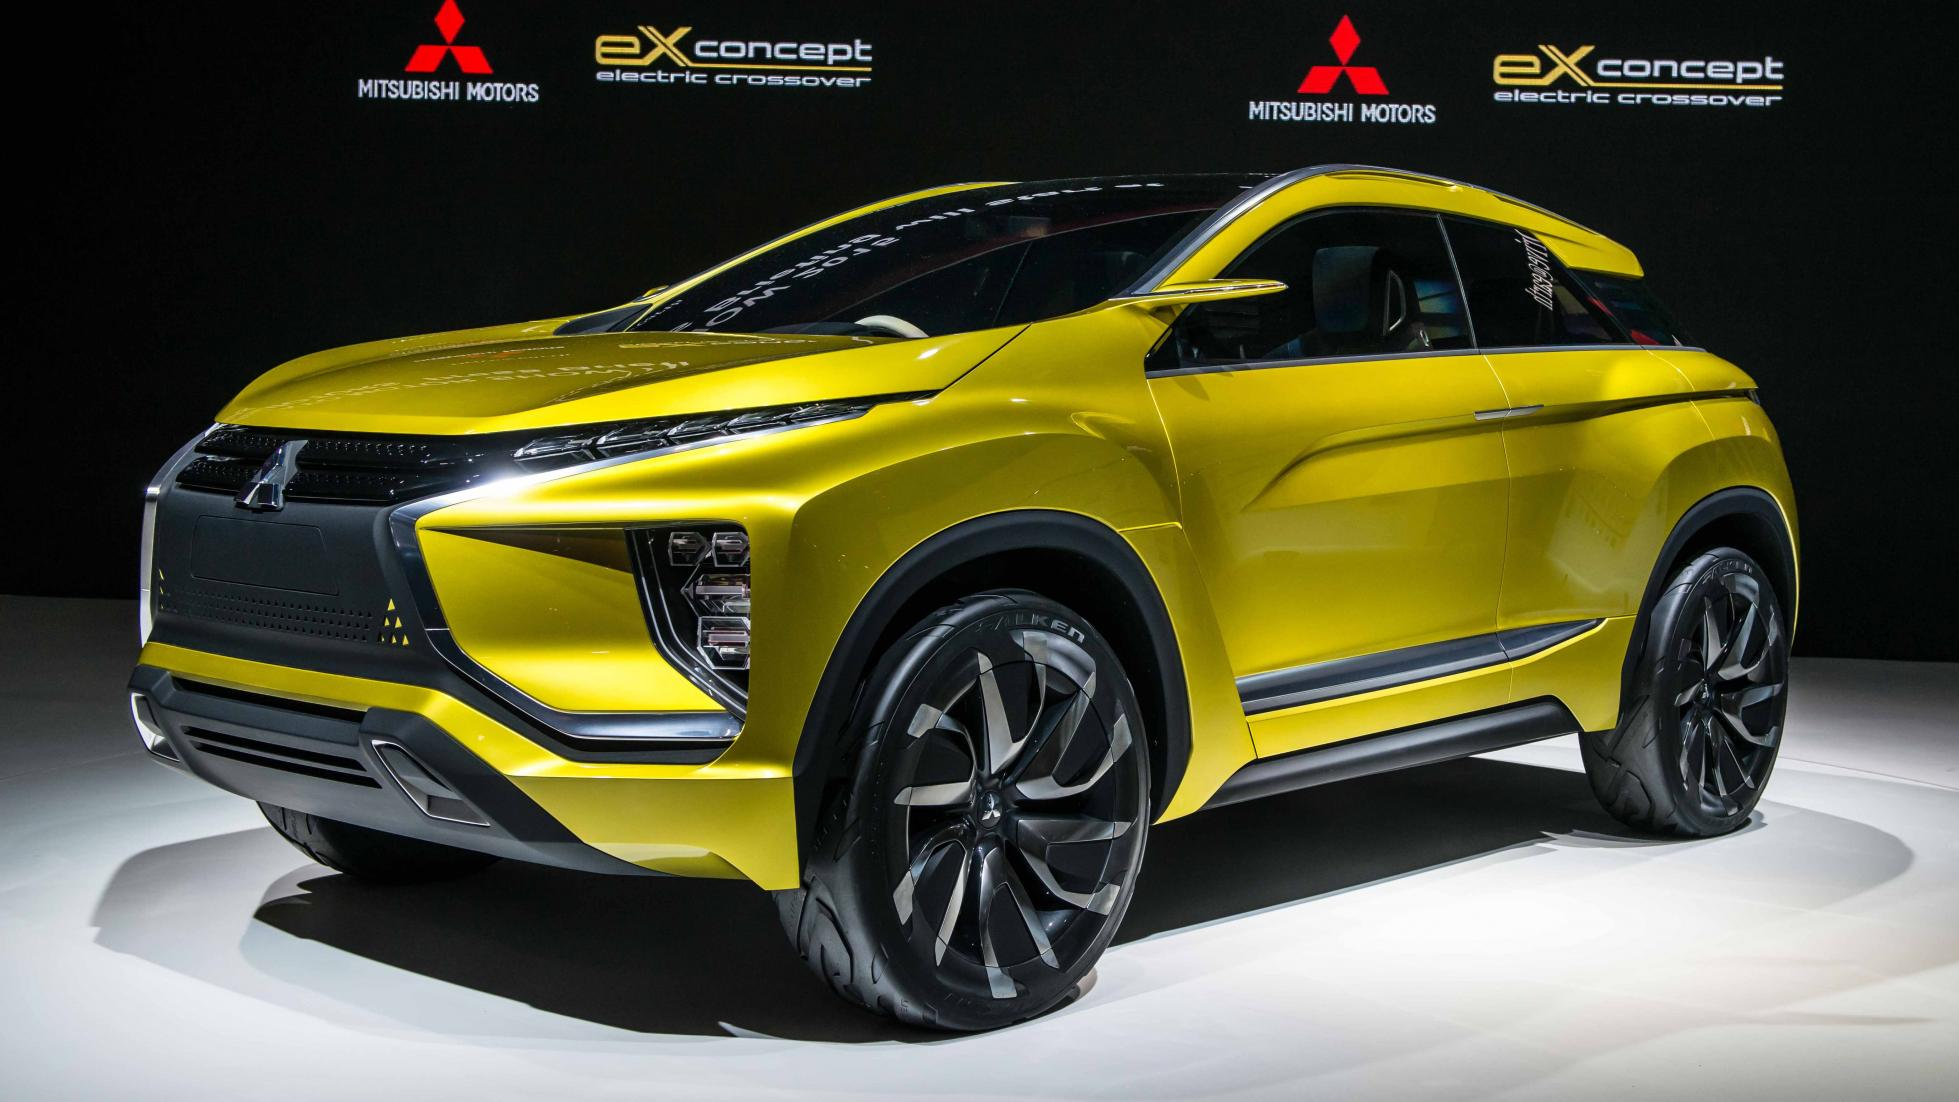 mitsubishi's ex concept is the new asx